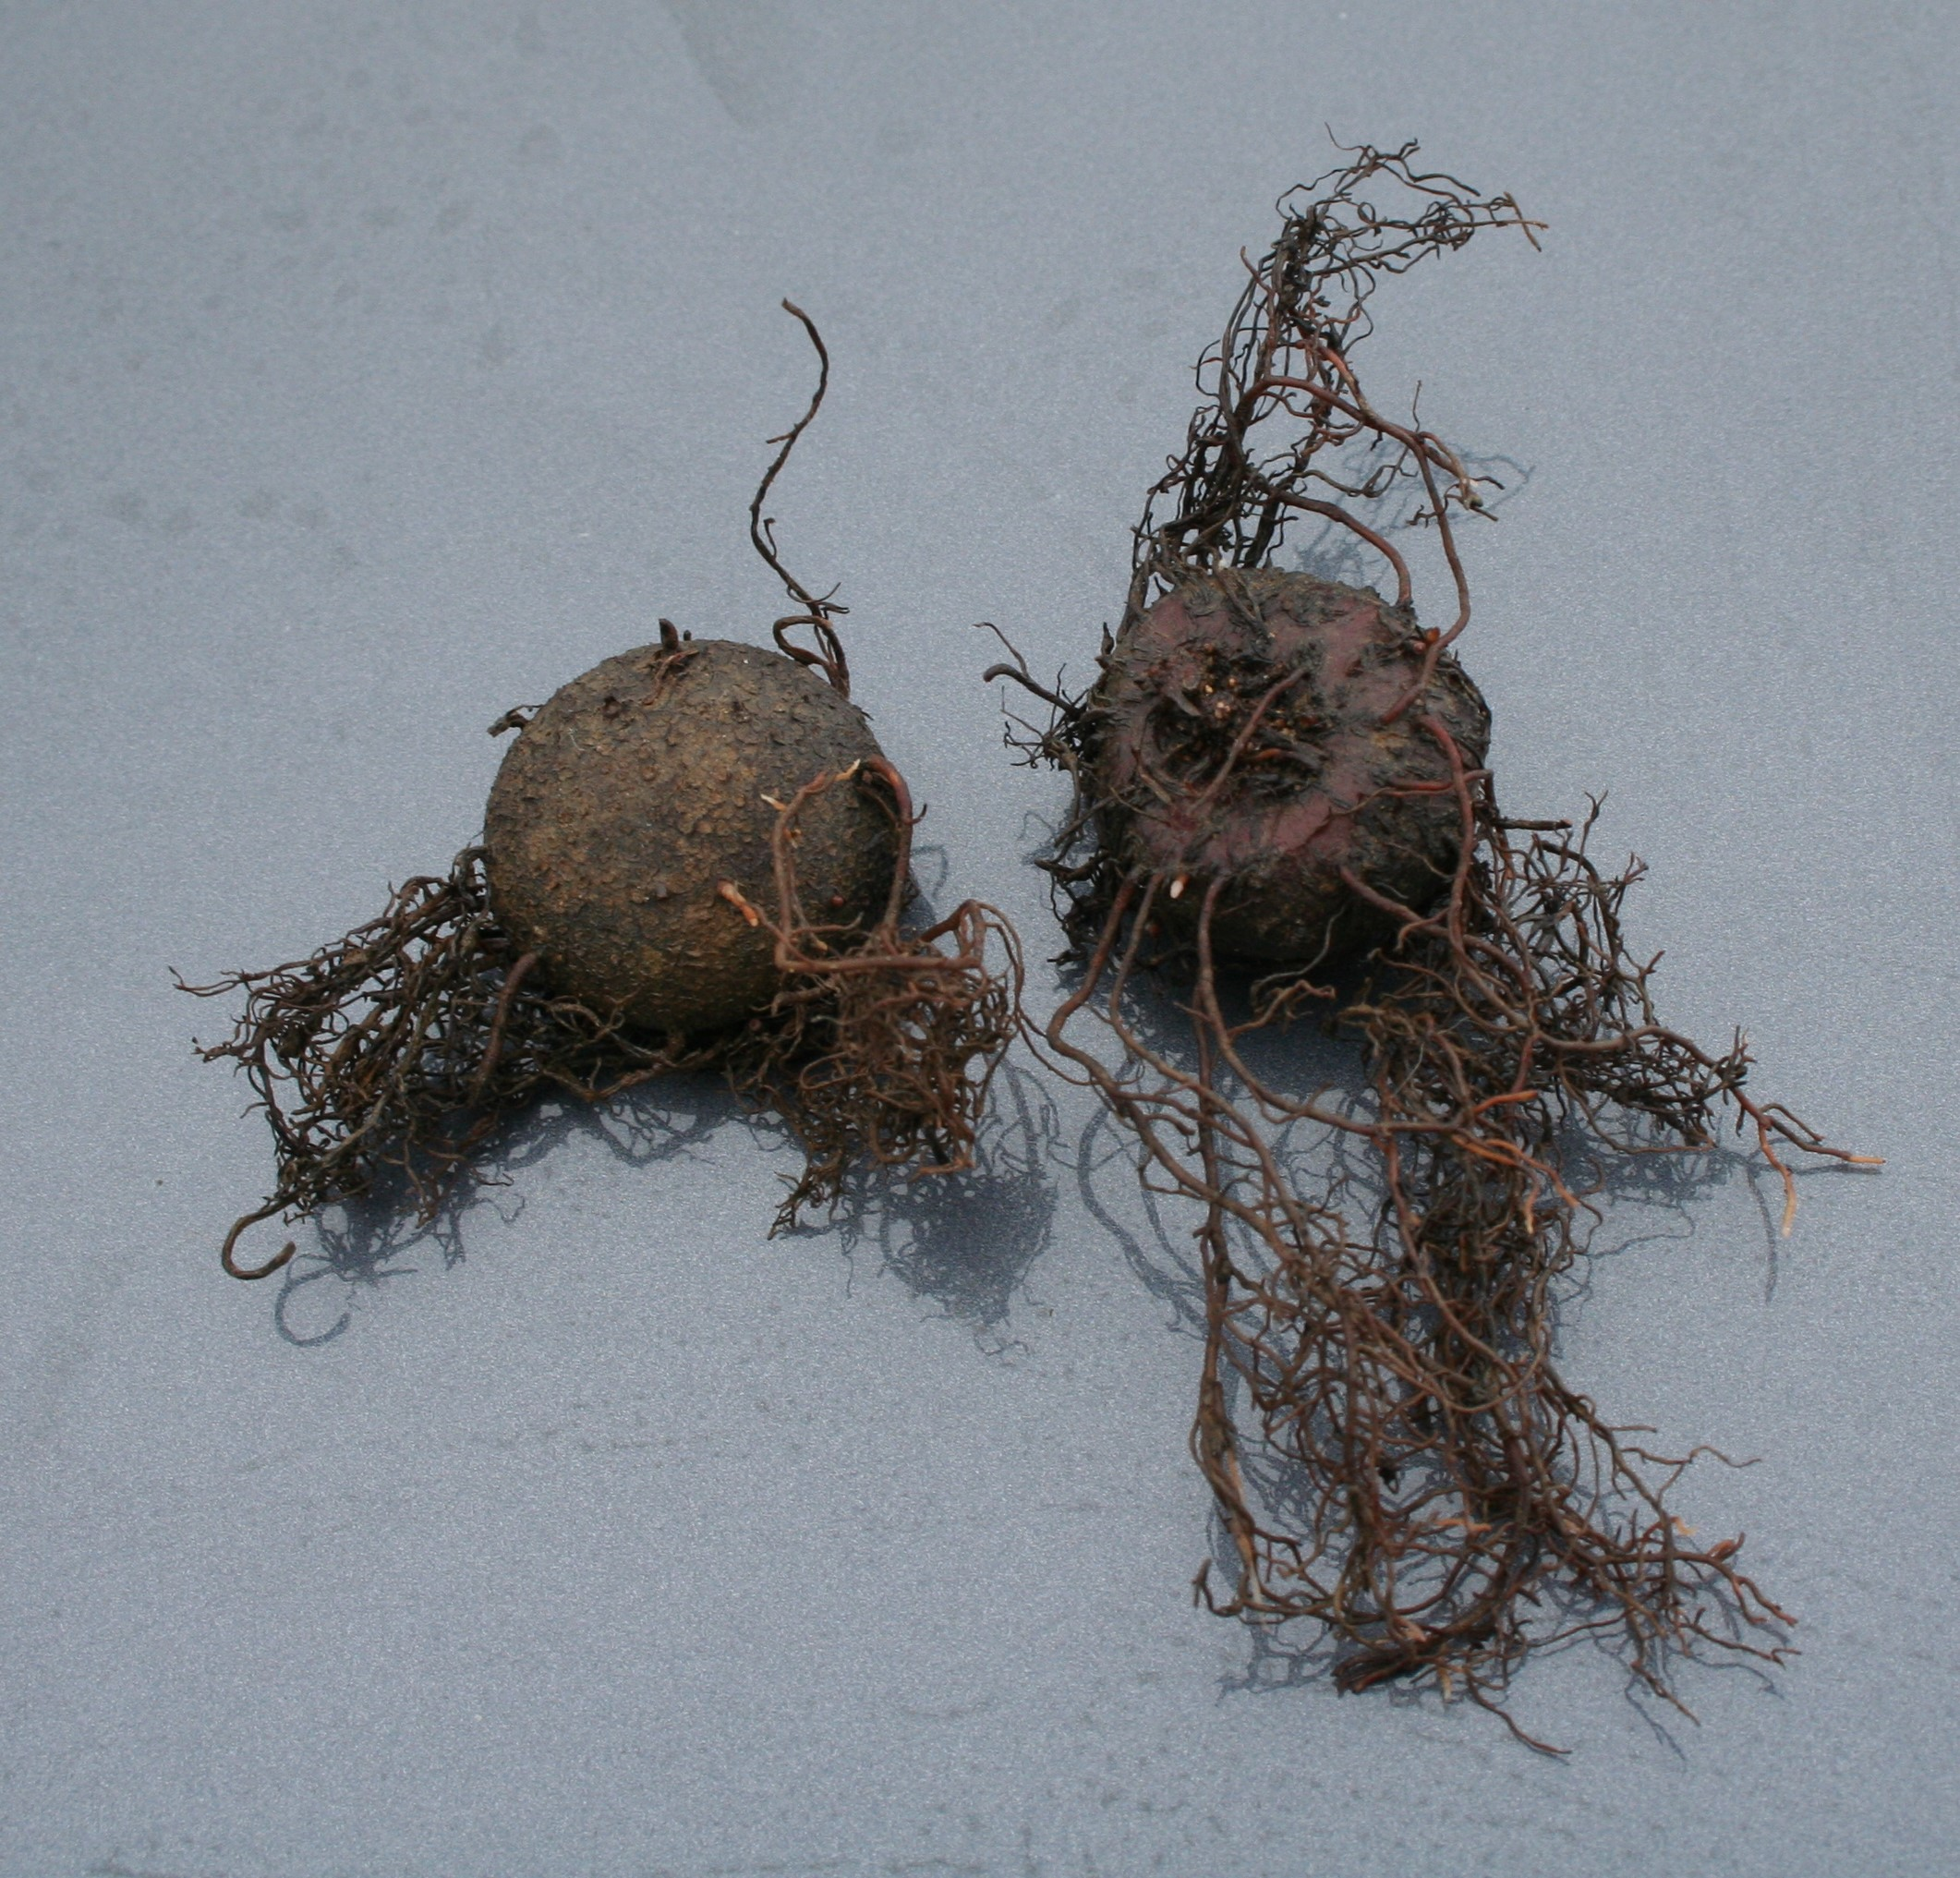 Dormant Cyclamen Hederifolium Corms